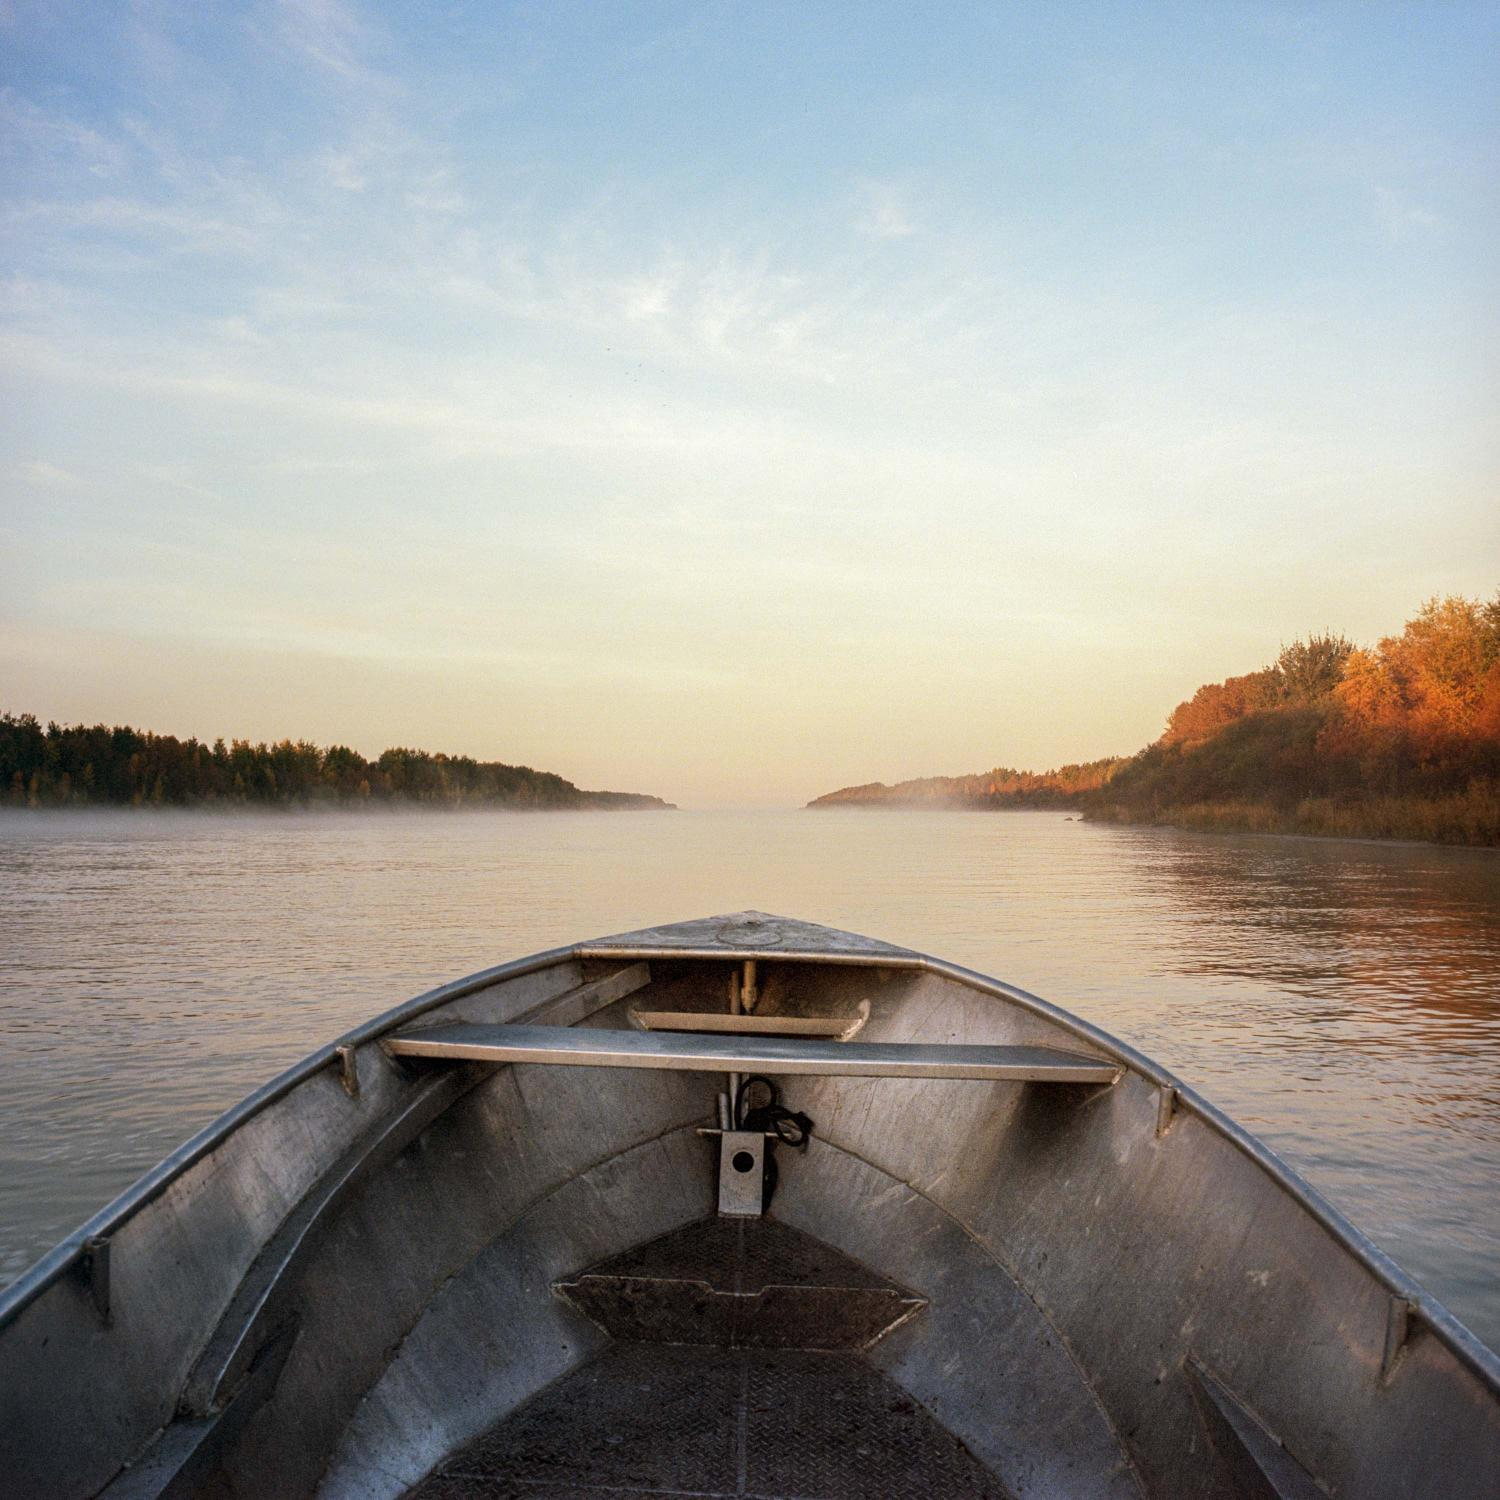 September 23 2016. A fisherman's boat approaches Two Mile Channel, an artificial channel created by Manitoba Hydro between Playgreen Lake, upstream from the community of Norway House Cree Nation, and Lake Winnipeg as part of the Lake Winnipeg Regulation. Historical construction activities in the 1970's resulted in soil and groundwater contamination along with the continued presence of construction debris along it's banks. Significant erosion continues around the channel to this day, resulting in the sedimentation of Playgreen Lake impacting drinking water, light penetration and oxygen production impacting the ecosystem. https://www.lwic.org/location/2-mile-channel